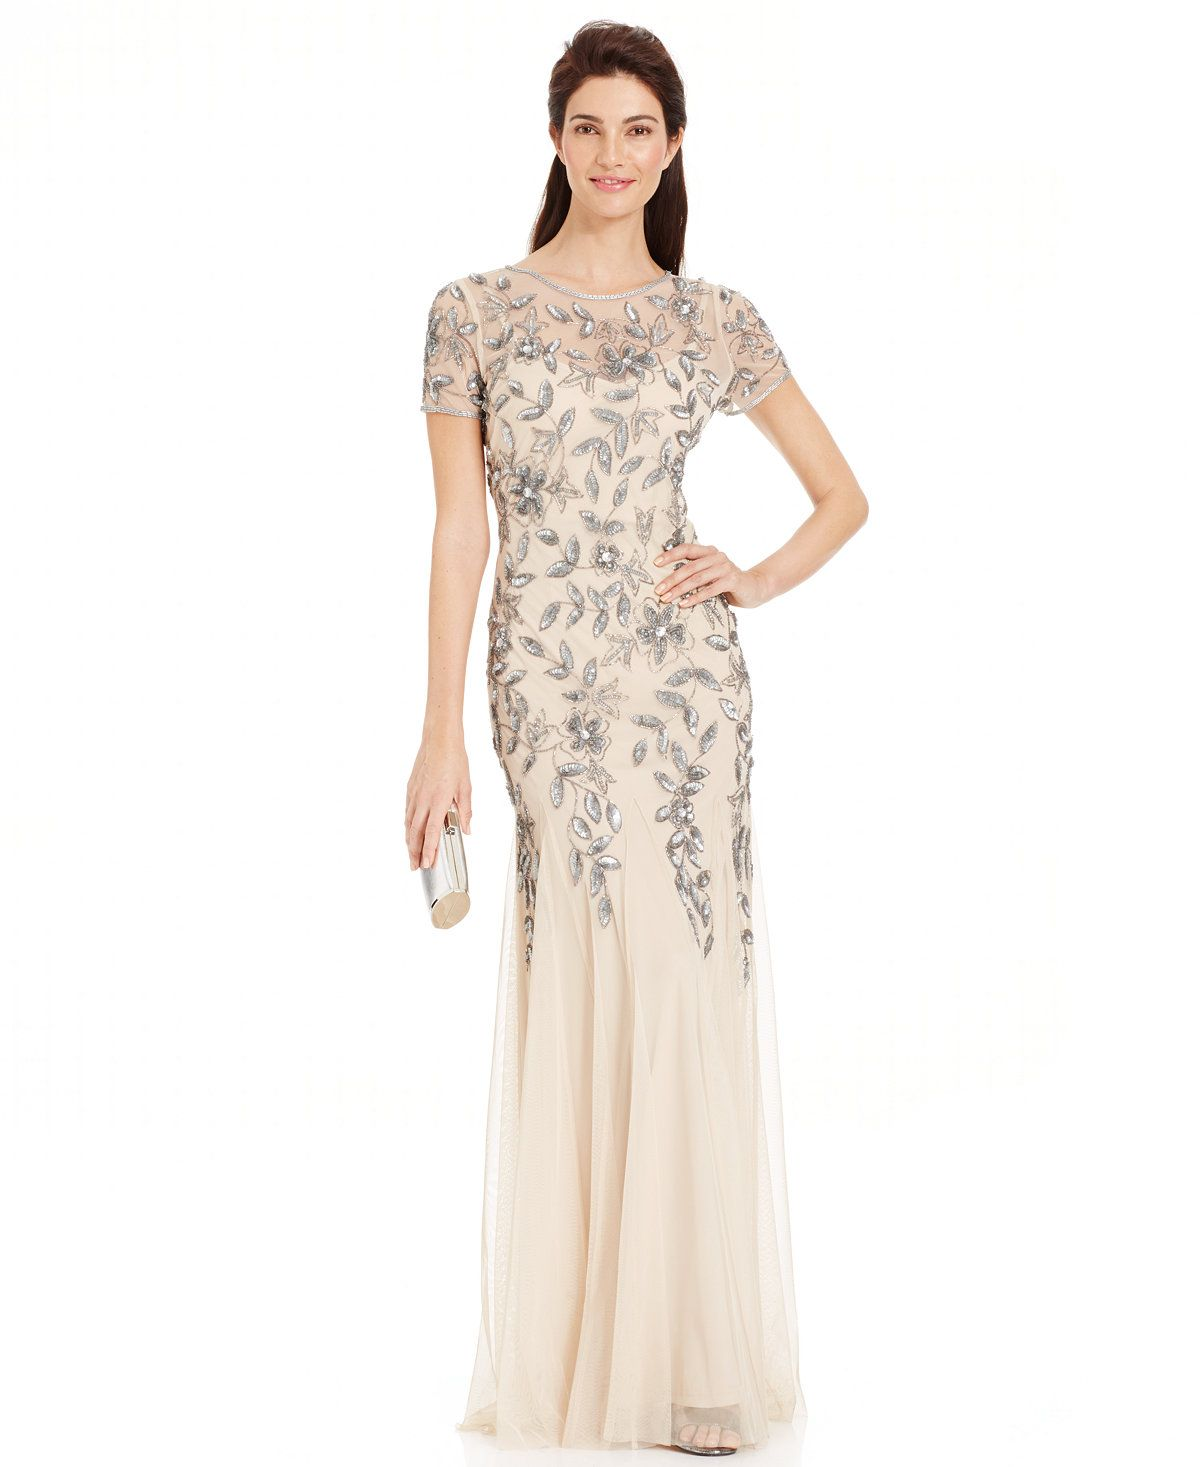 Adrianna Papell Petite Floral-Beaded Gown | Mermaid gown, Adrianna ...